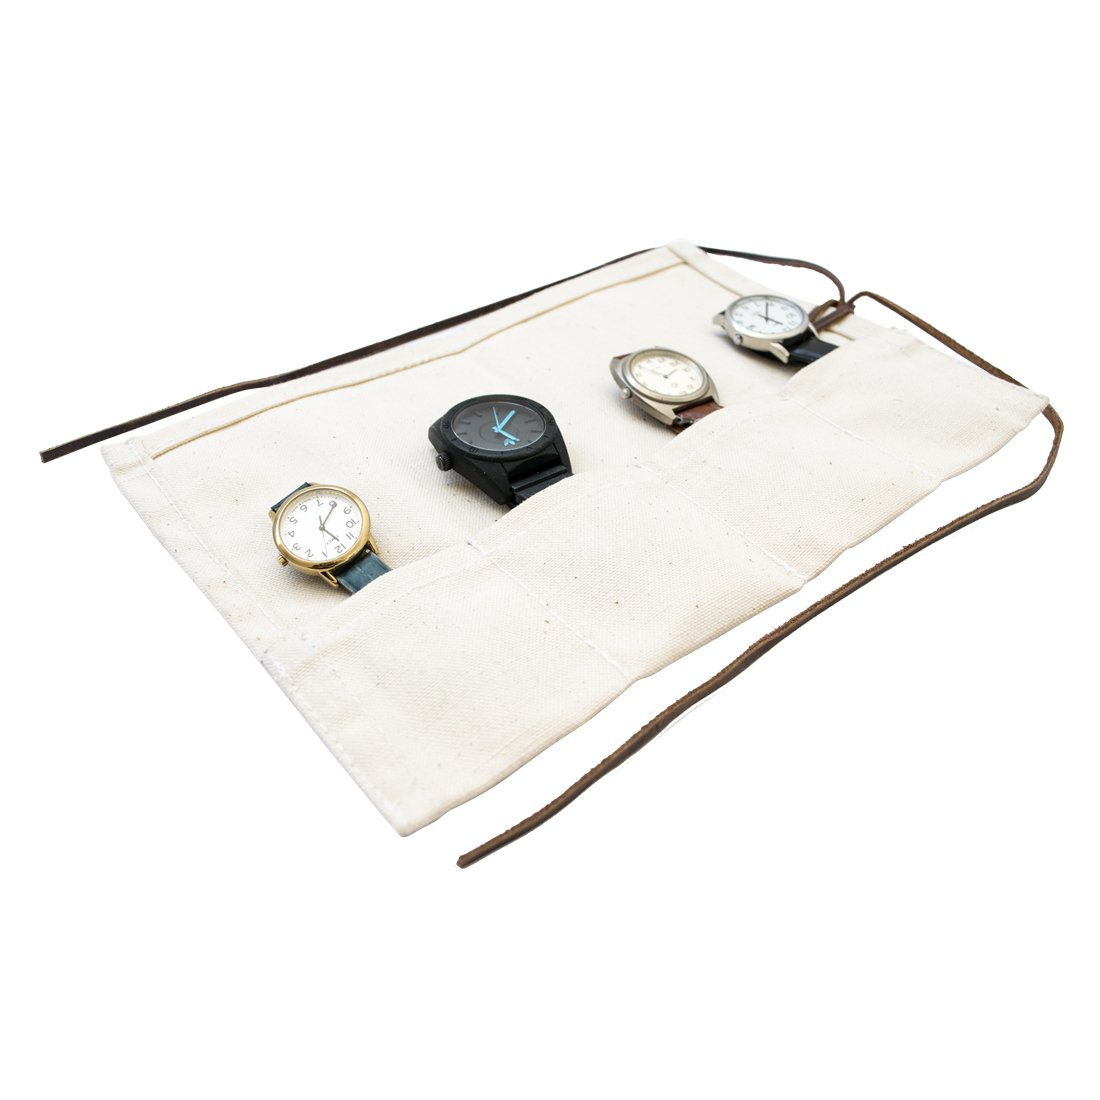 Durable Canvas Travel Watch Roll Organizer Holds Up To 4 Watches Handmade by Hide & Drink